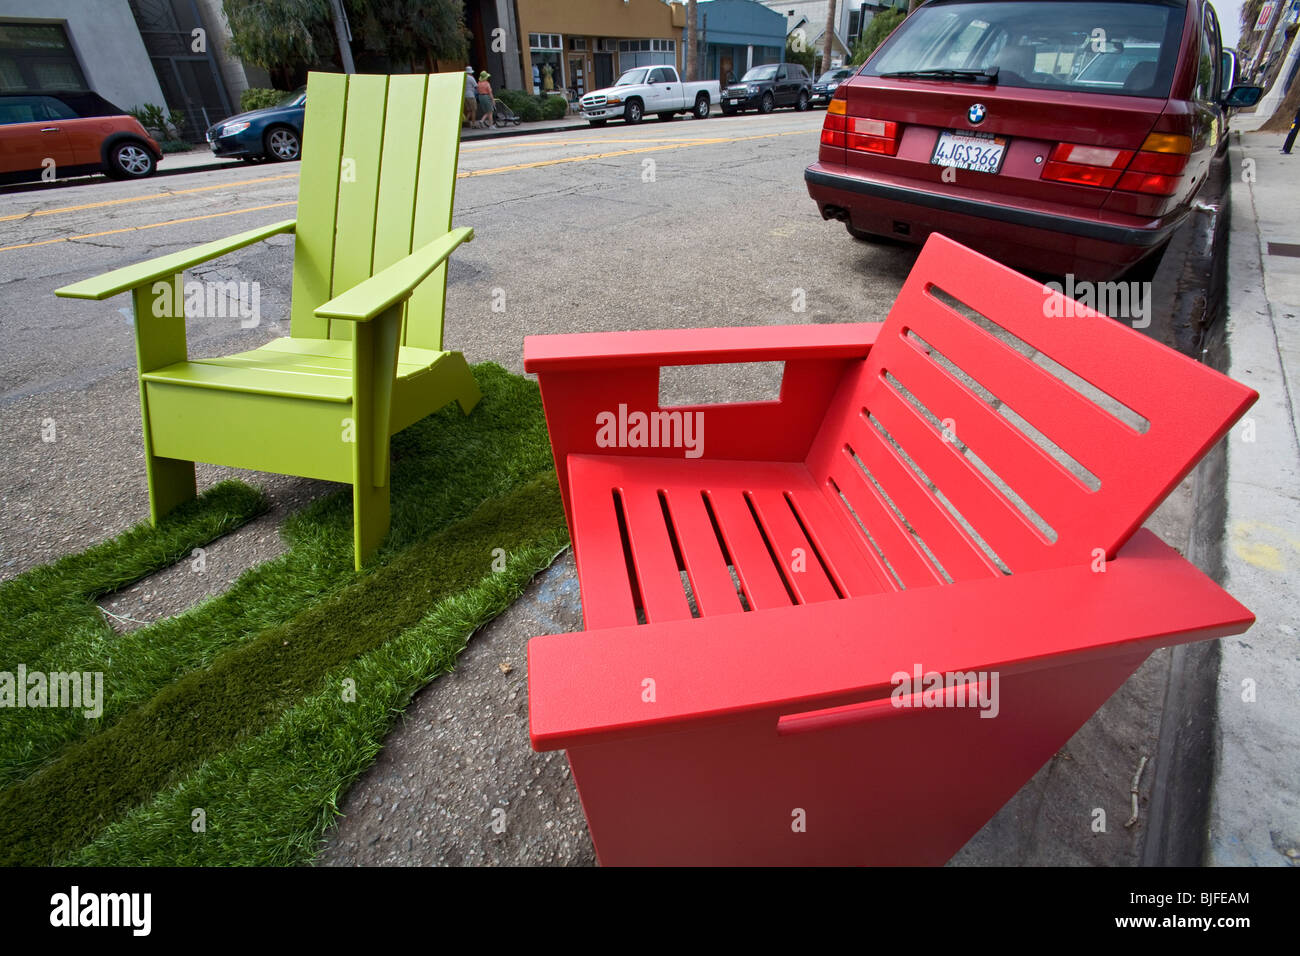 Recycled Plastic Outdoor Furniture By Loll Designs Made From Stock Photo Royalty Free Image